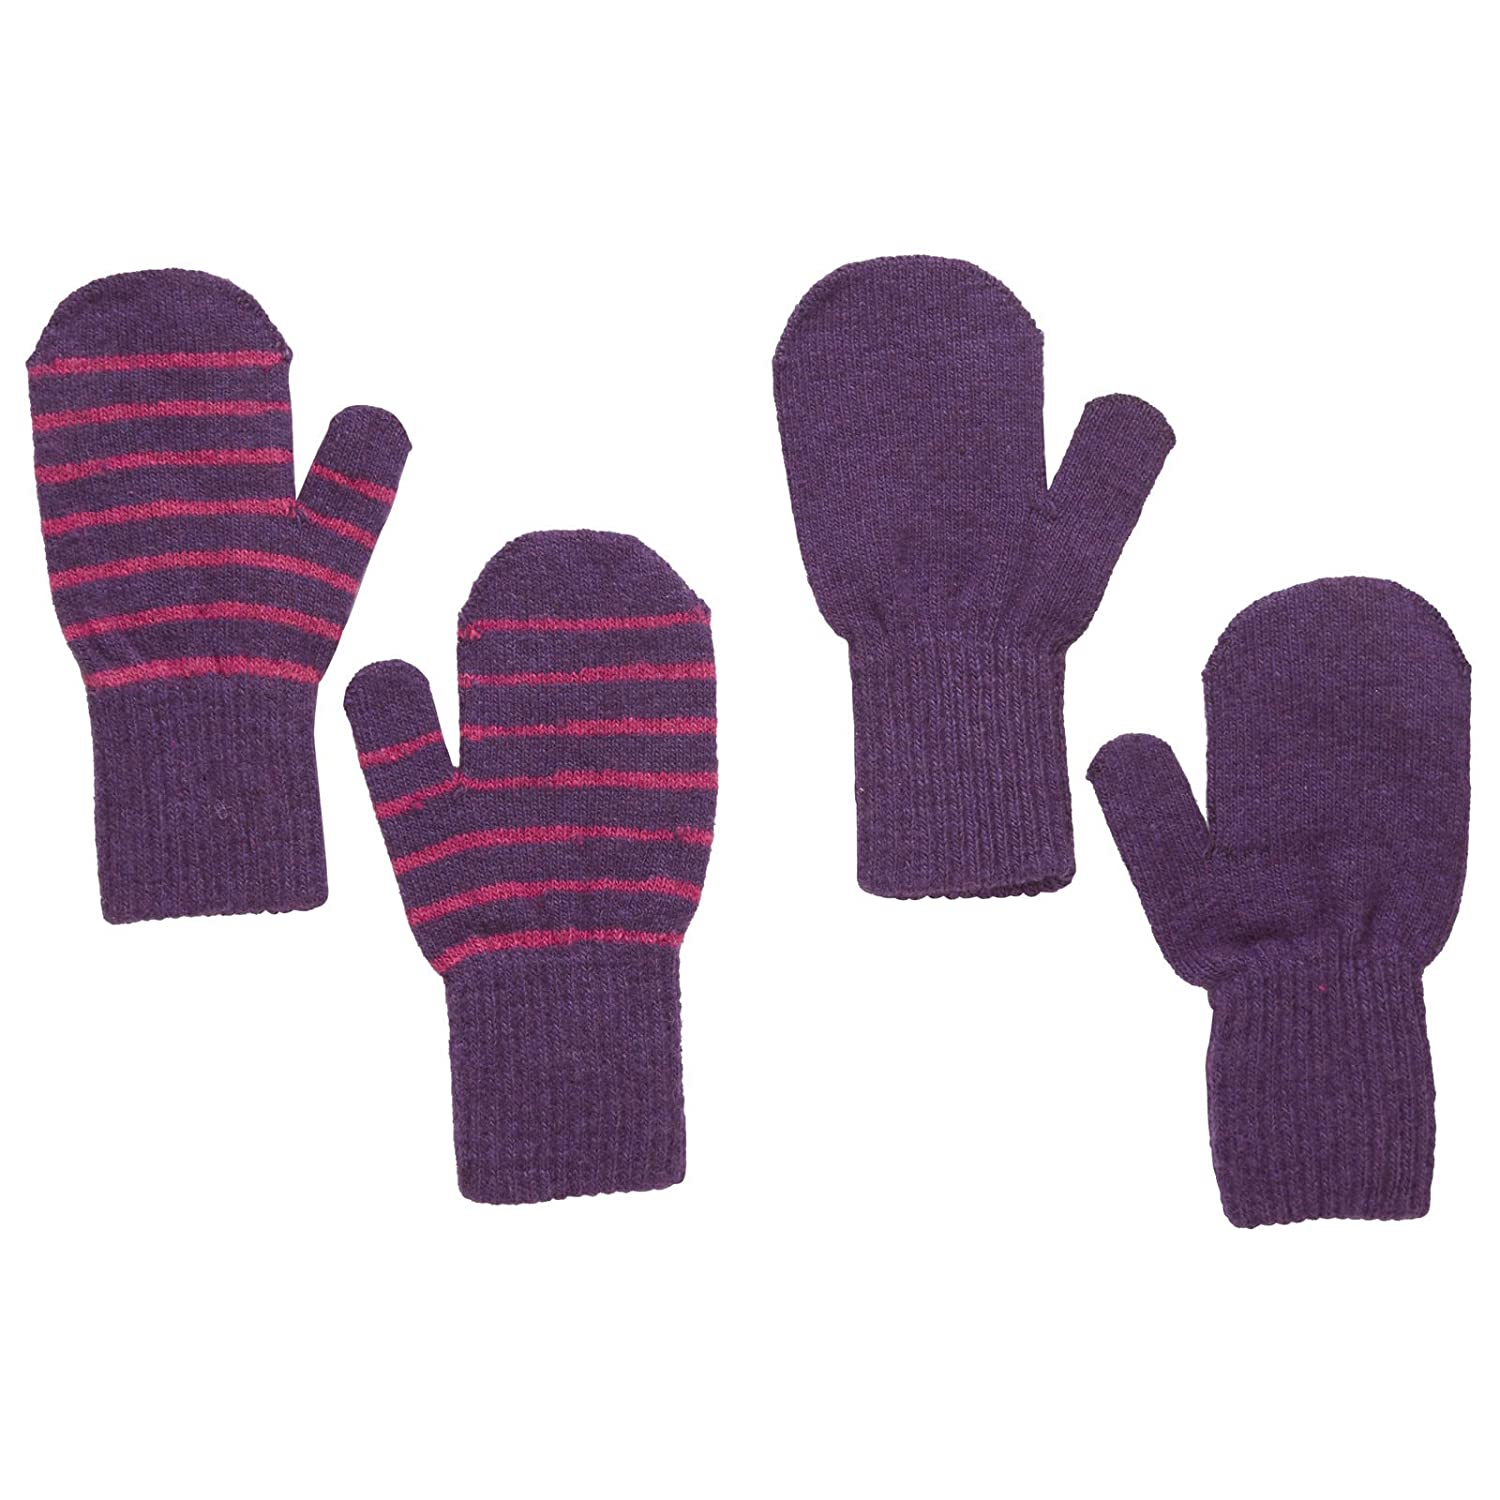 Baby-Toddler Mittens, Purple, 2-Pack (12-24 Months)